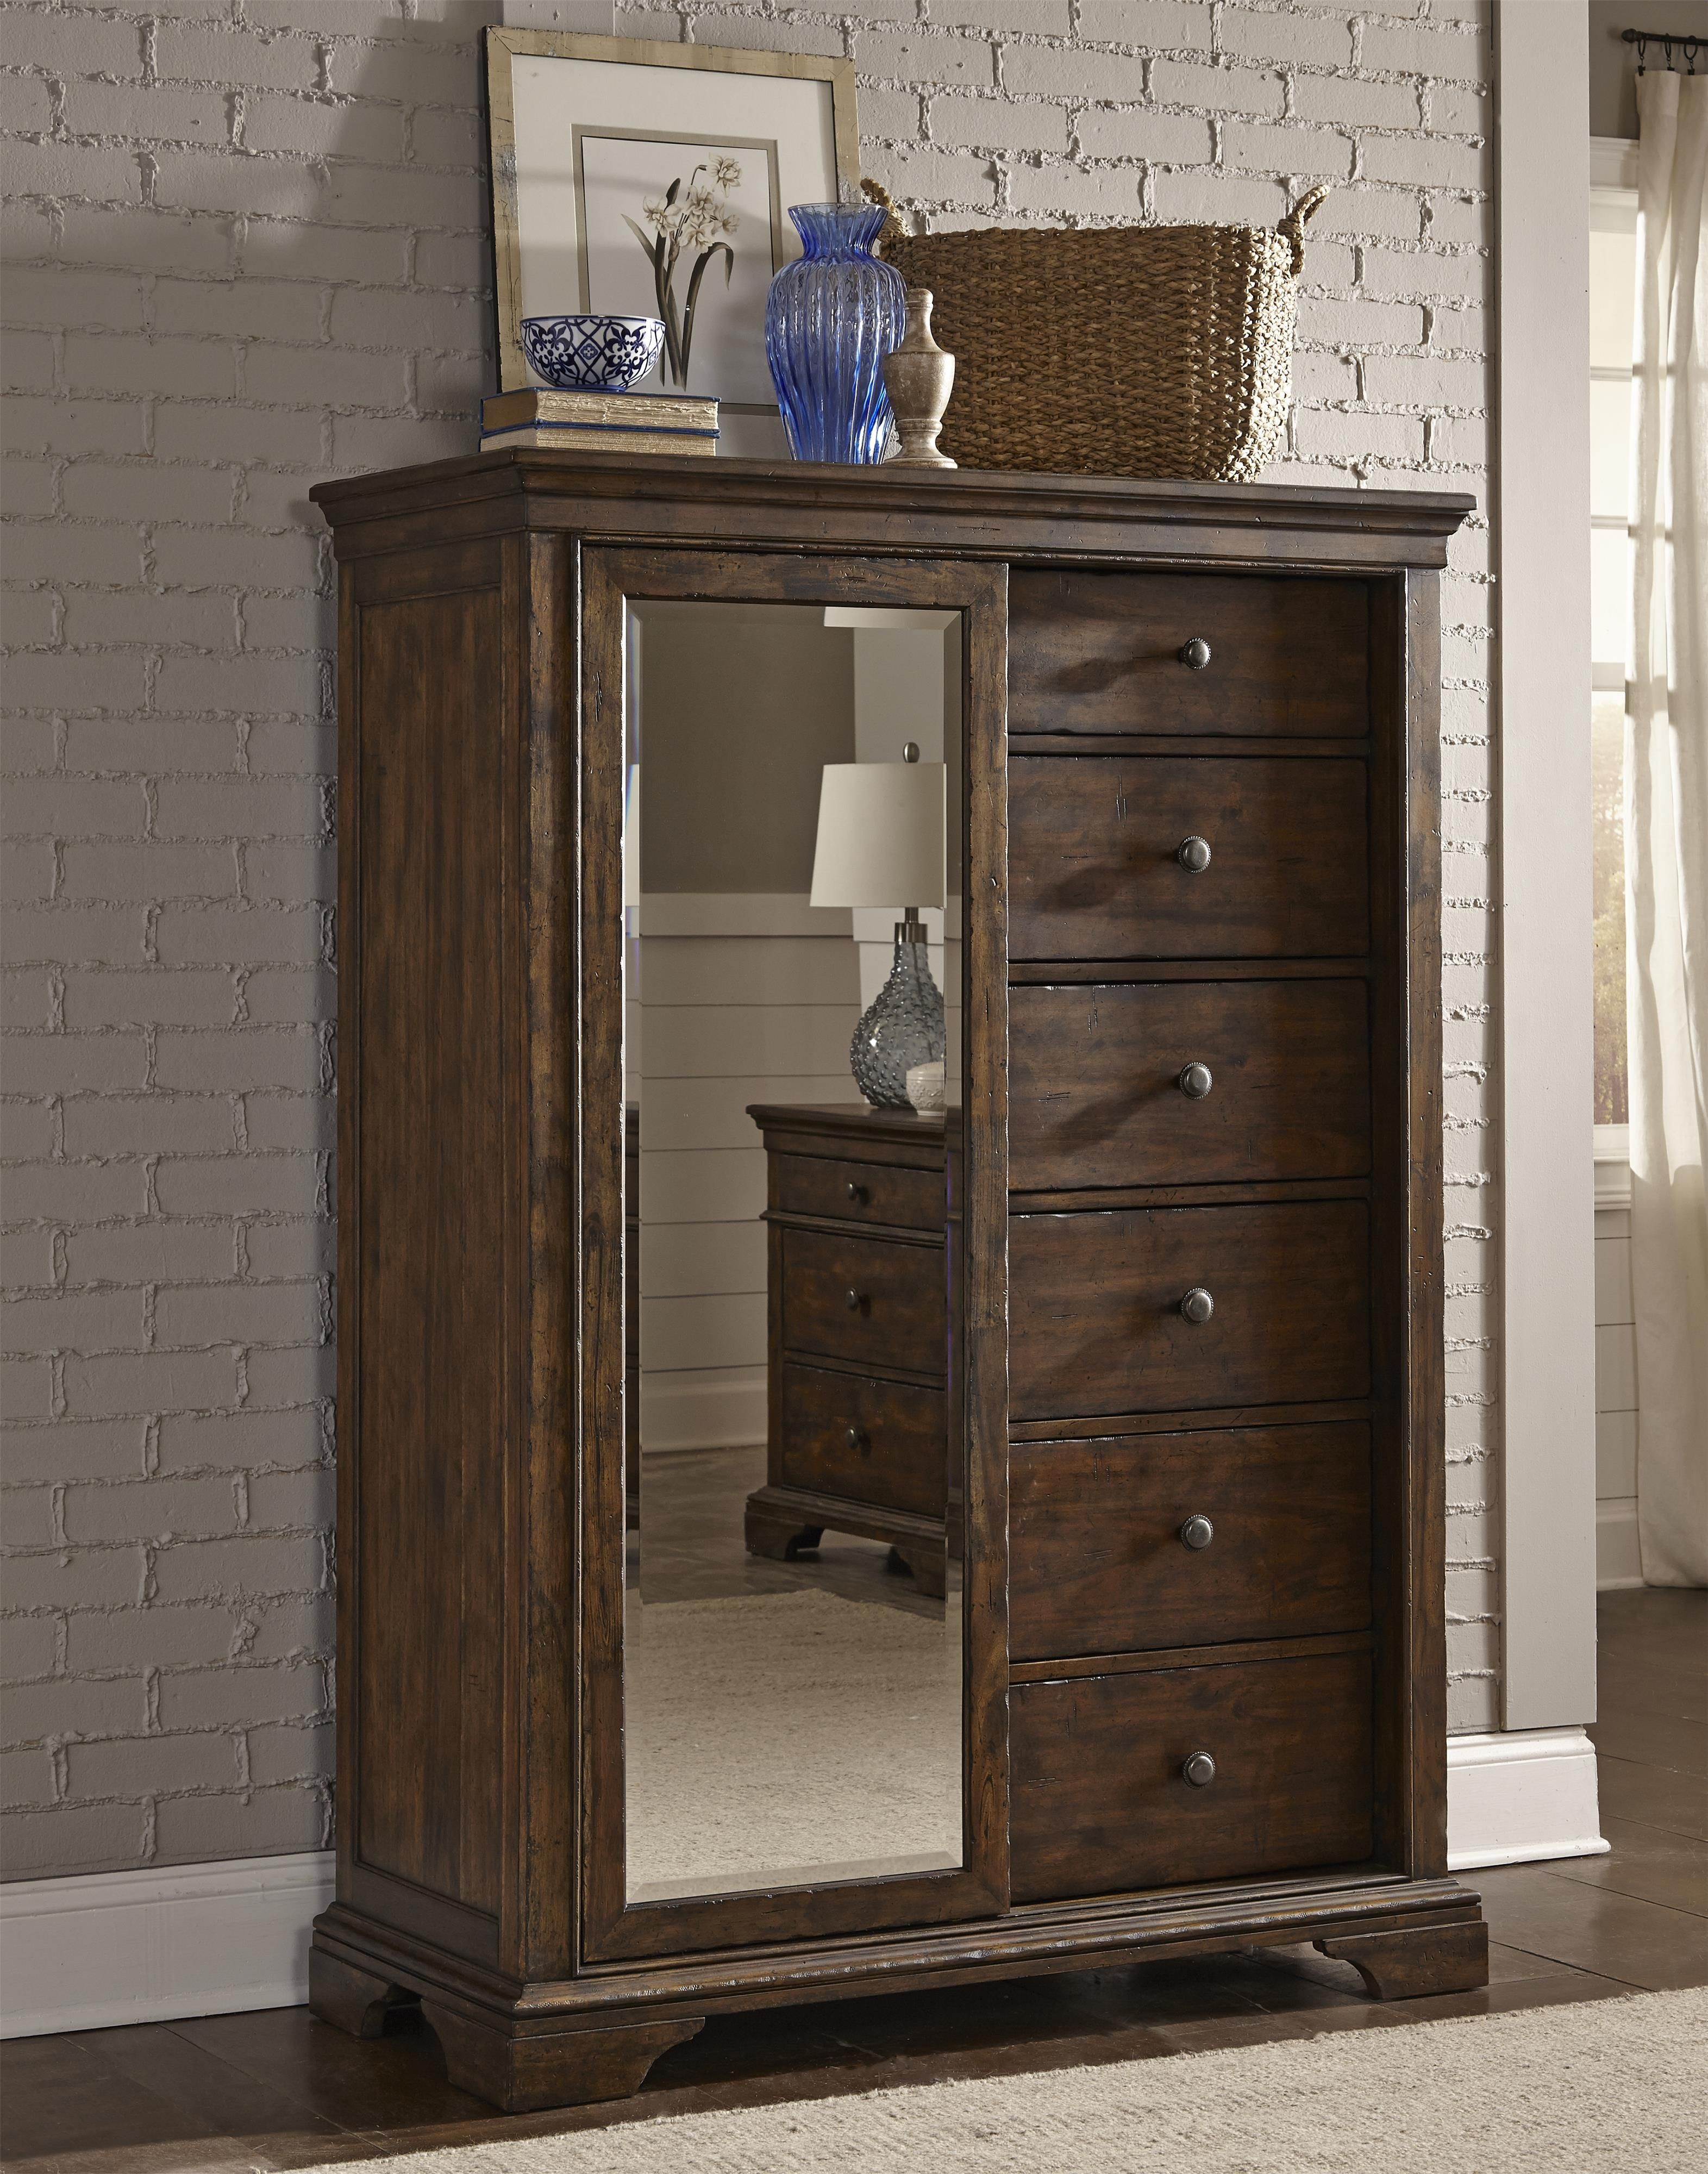 Trisha Yearwood Home Tulsa Sliding Door Chest with Mirror by Trisha Yearwood Home Collection by Klaussner & Trisha Yearwood Home Tulsa Sliding Door Chest with Mirror by Trisha ...